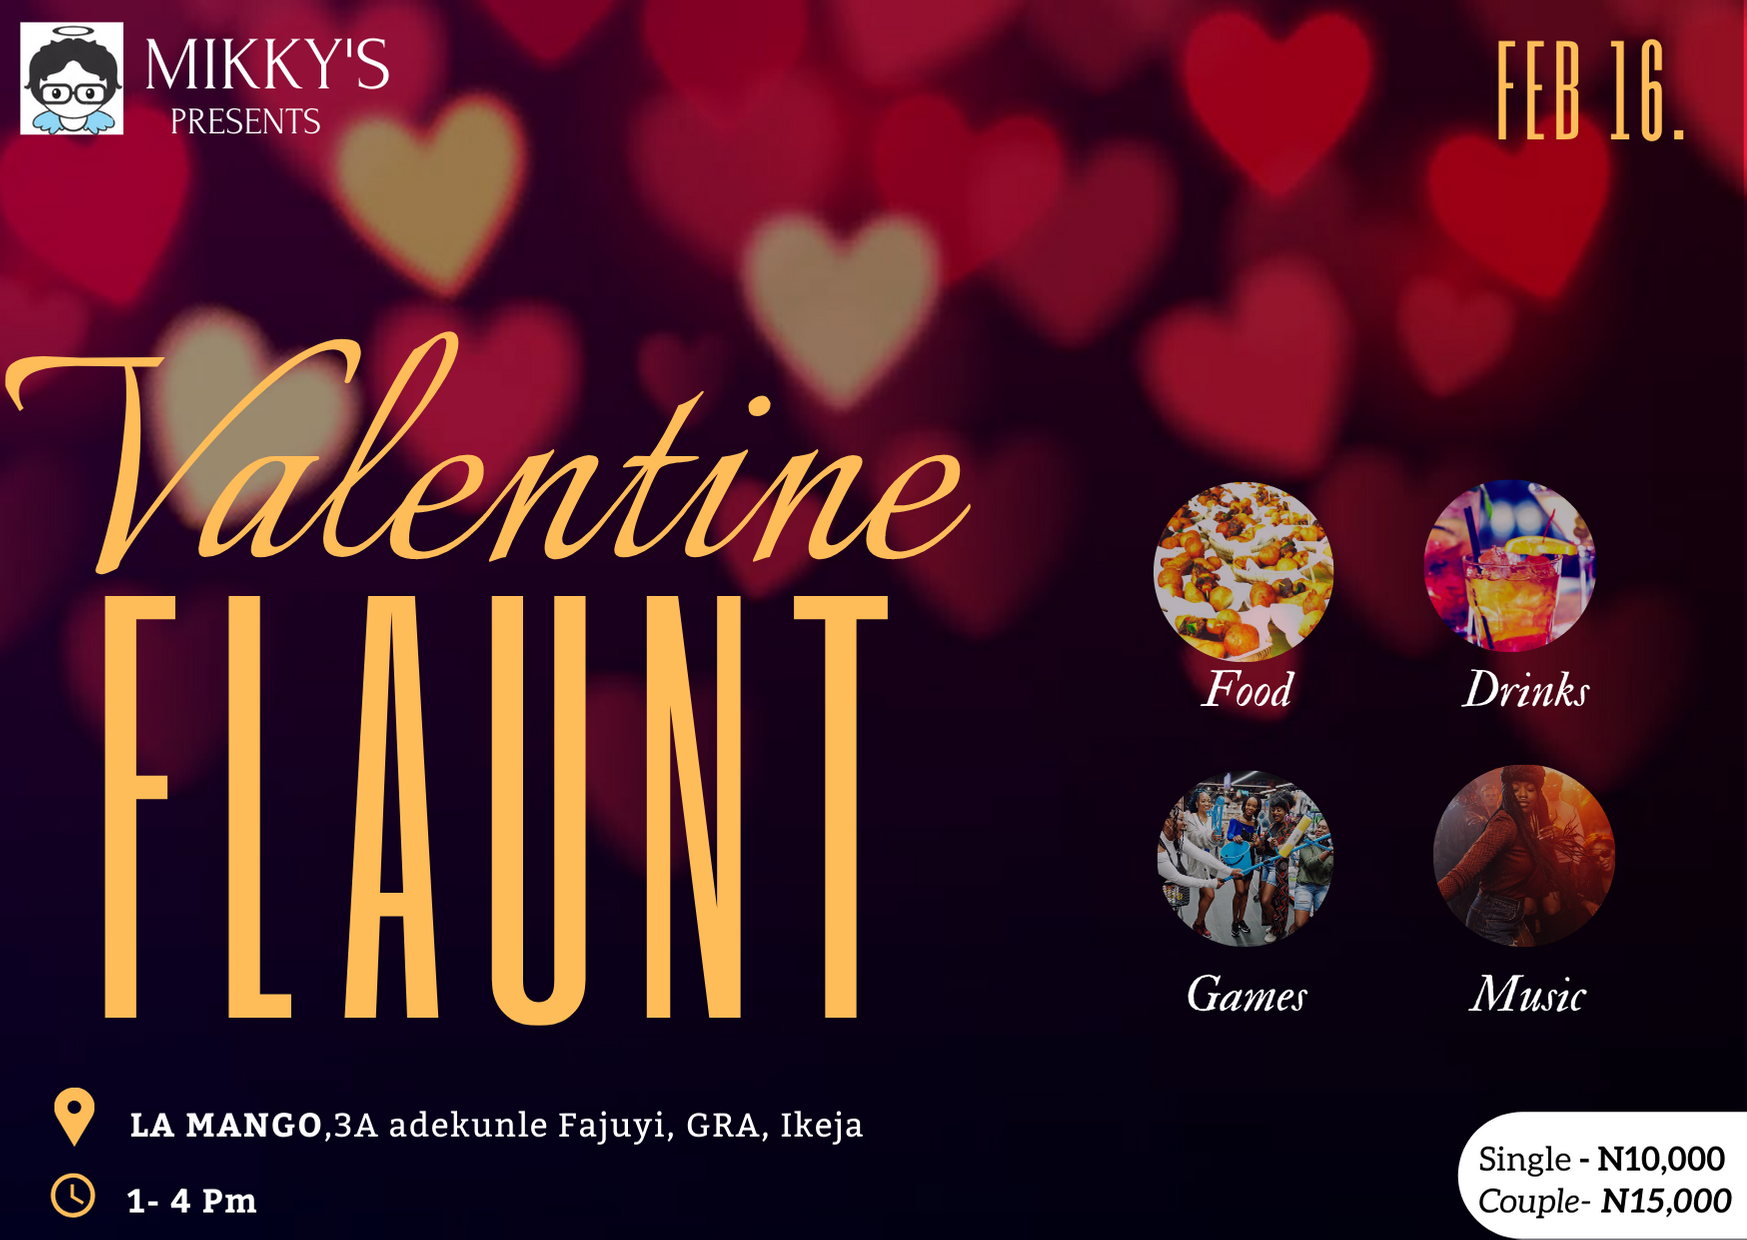 Mikky's Valentine FLAUNT Post free event in Nigeria using tickethub.ng, buy and sell tickets to event